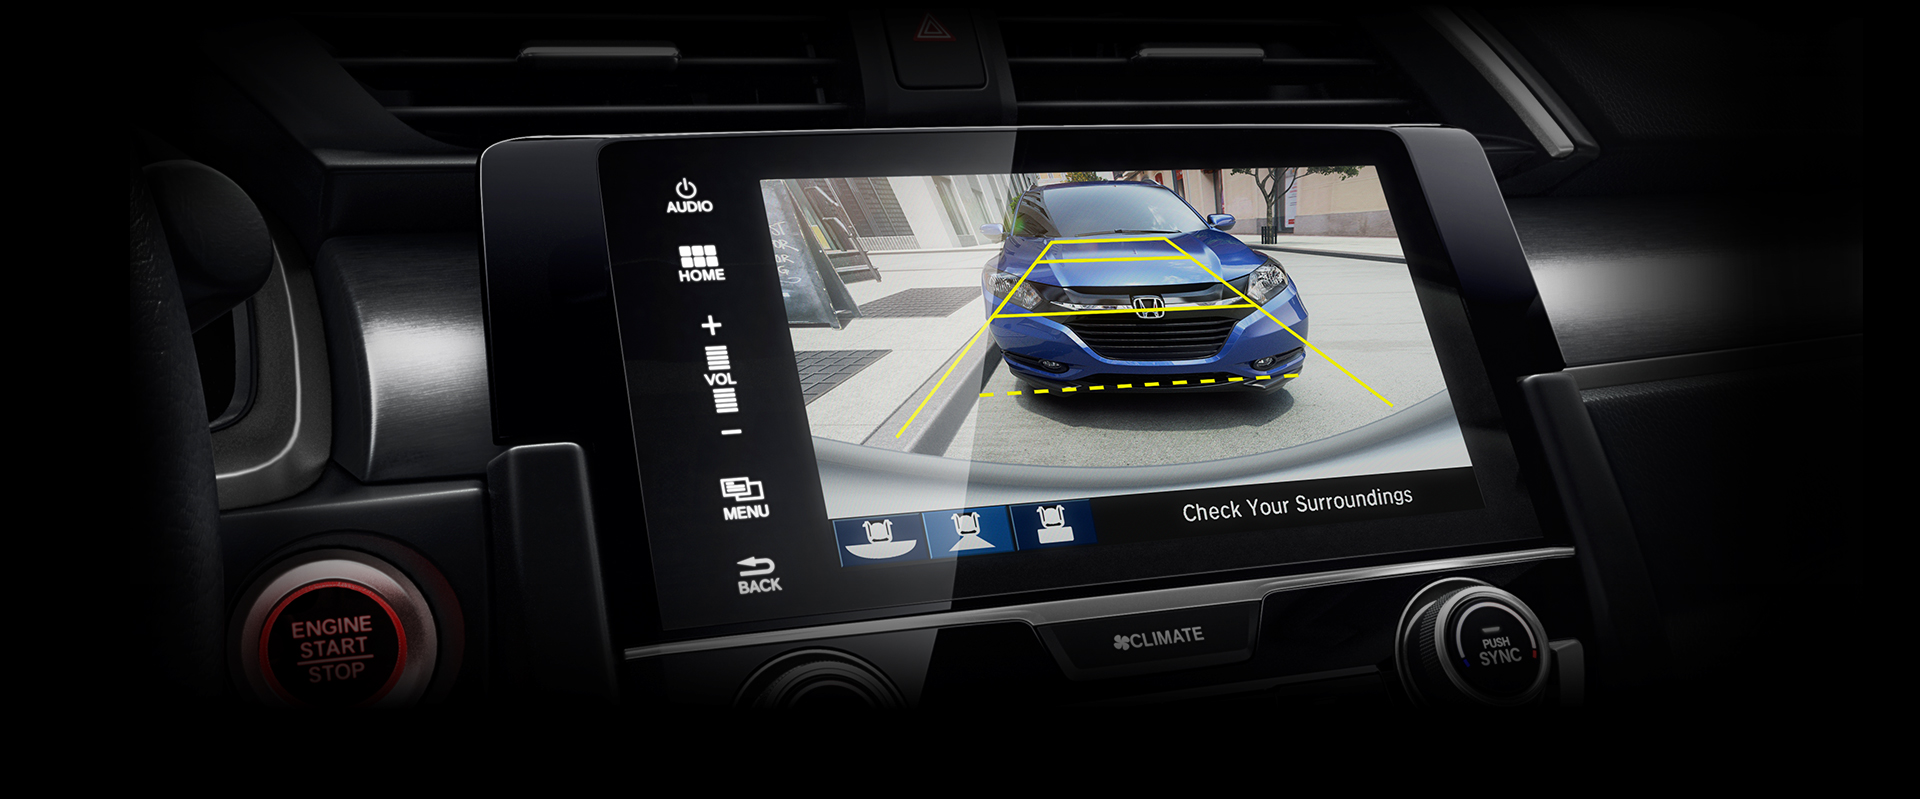 2016 Honda Civic Rearview Camera